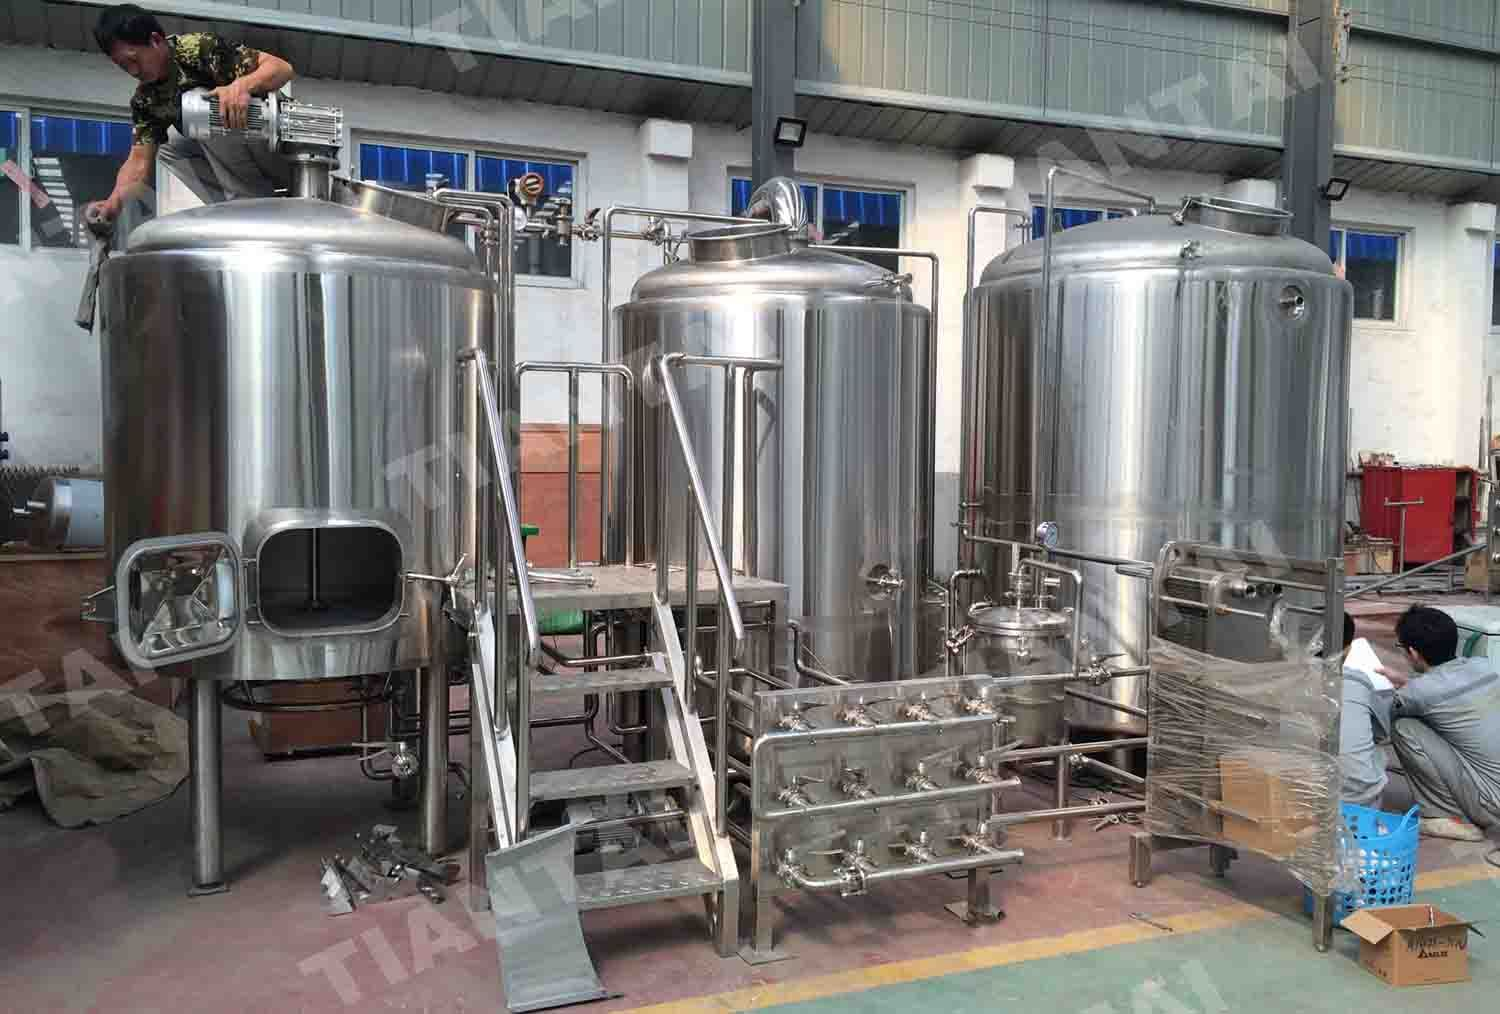 Turnkey 10bbl Beer Brewery System Delivered To Us Beer Brewery Beer Brewing Equipment Beer Equipment